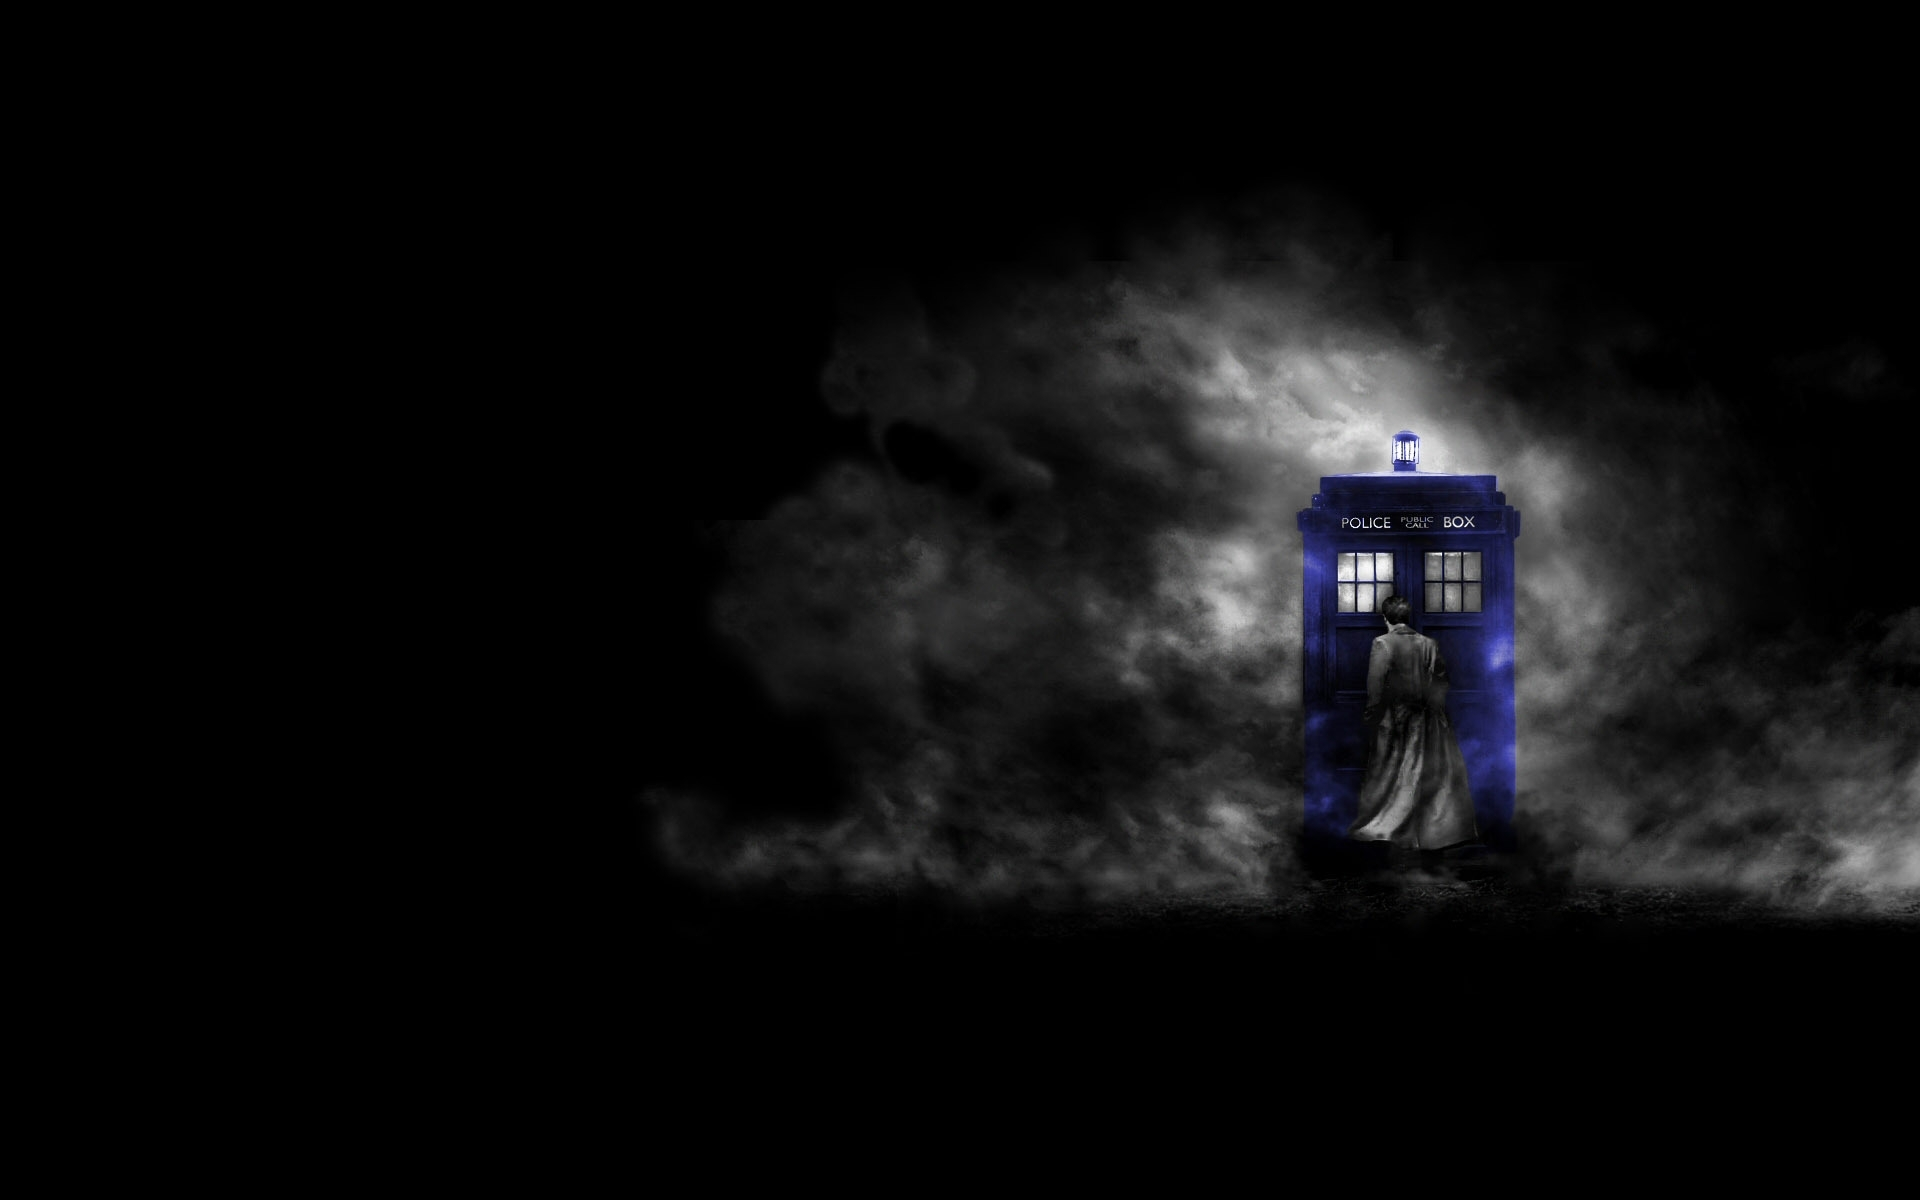 doctor who wallpaper 20491 1920x1200 px ~ hdwallsource